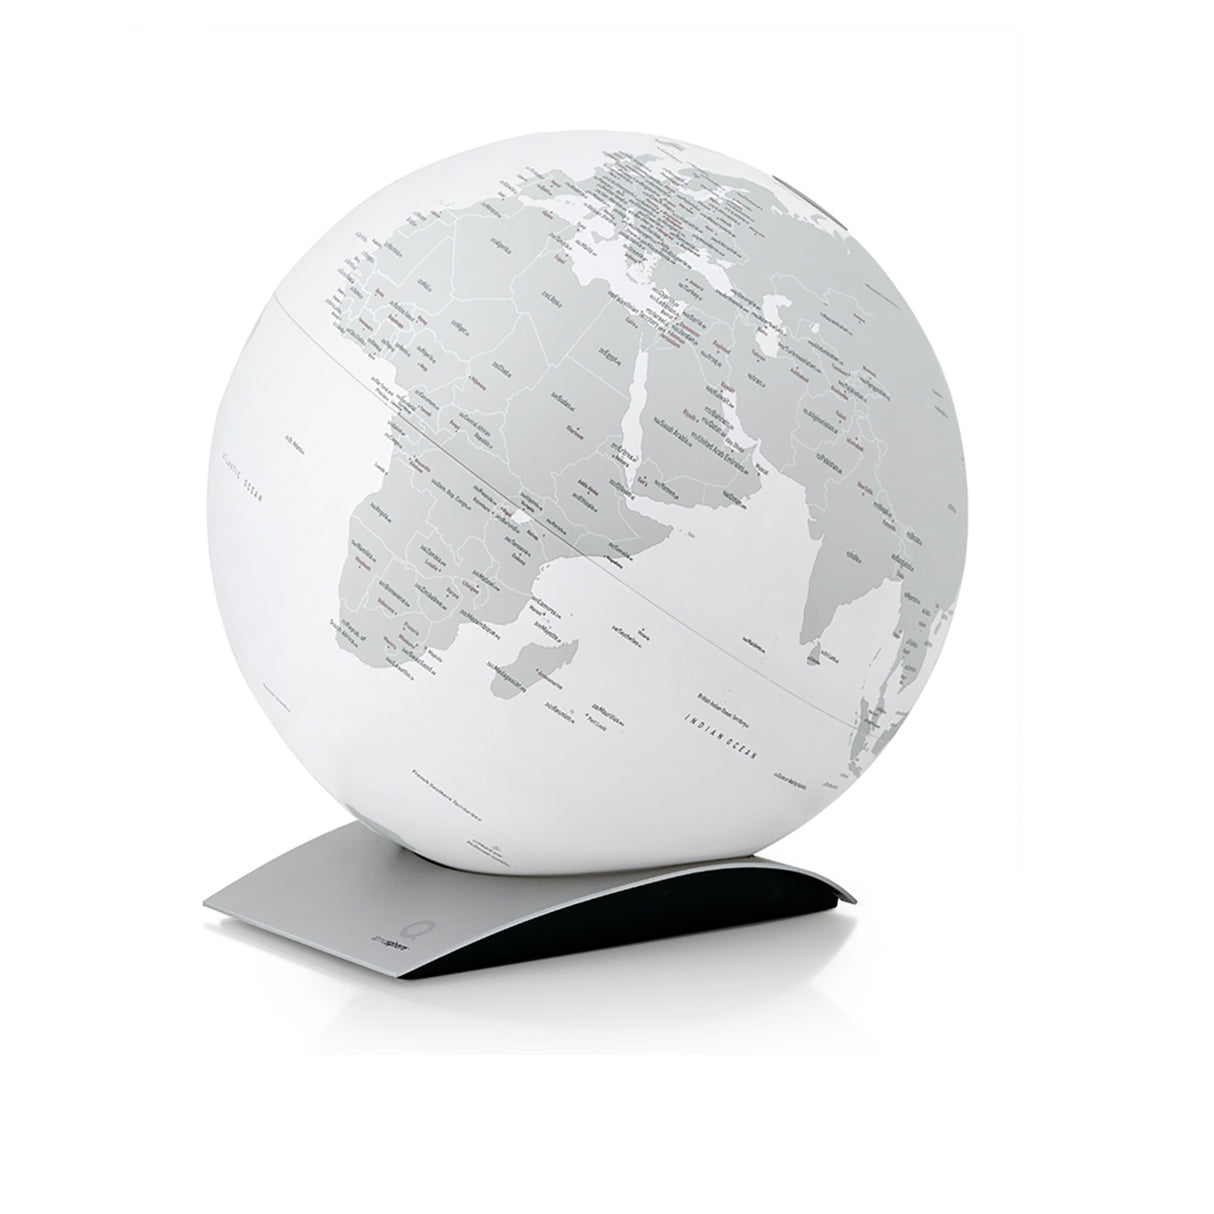 mappamondo - Capital Q Led - yourglobestore